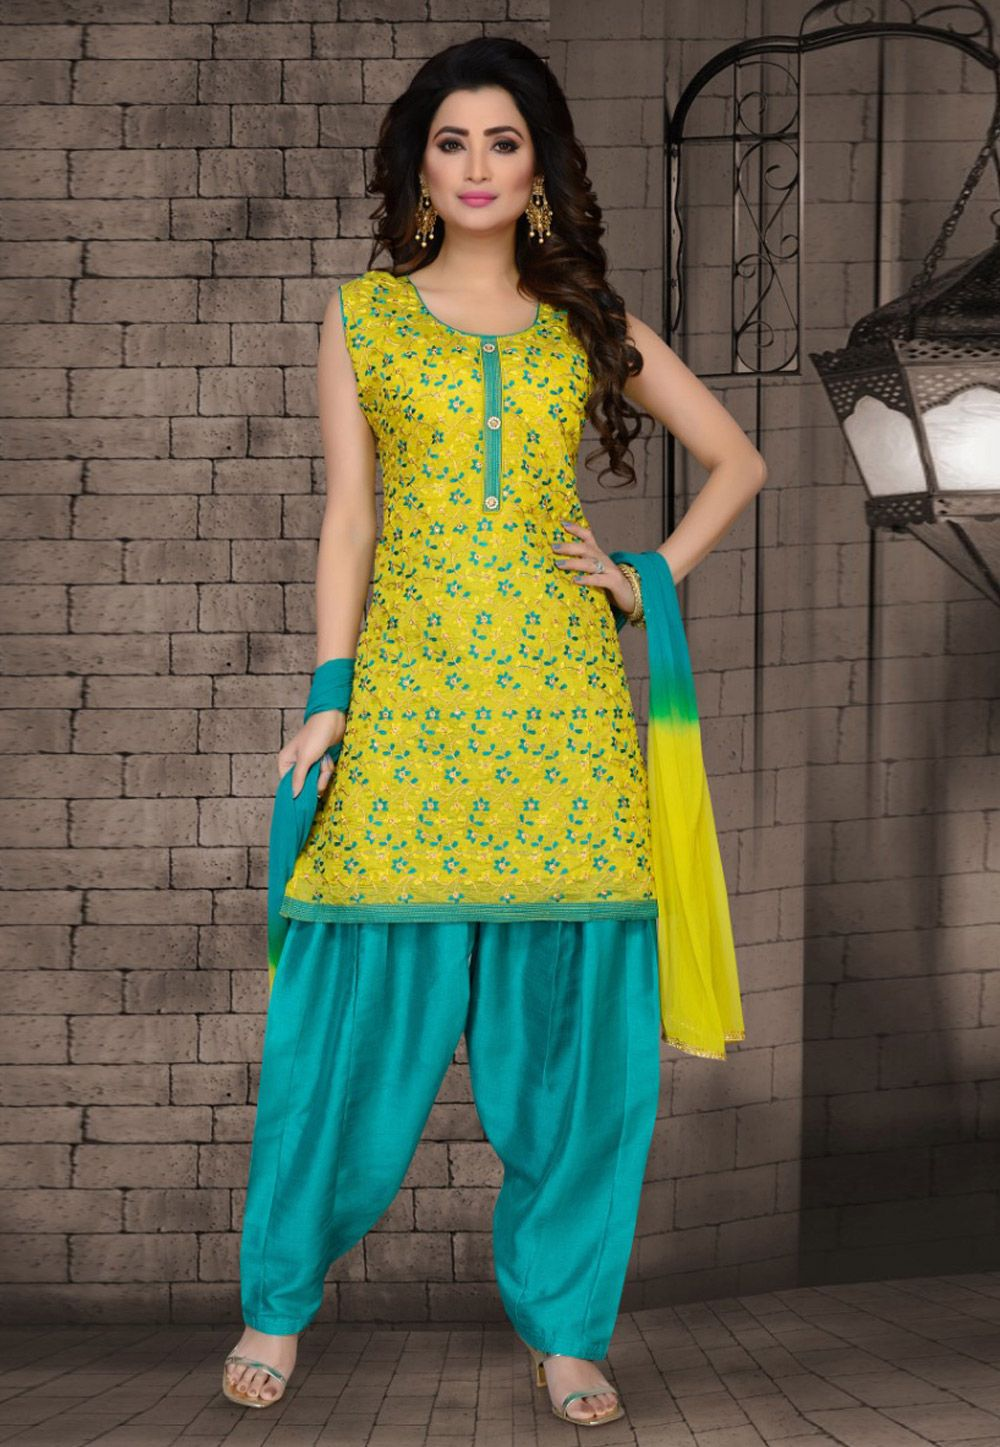 0321ab6f4c Buy Green Chanderi Silk Readymade Punjabi Suit 162433 online at lowest  price from huge collection of salwar kameez at Indianclothstore.com.